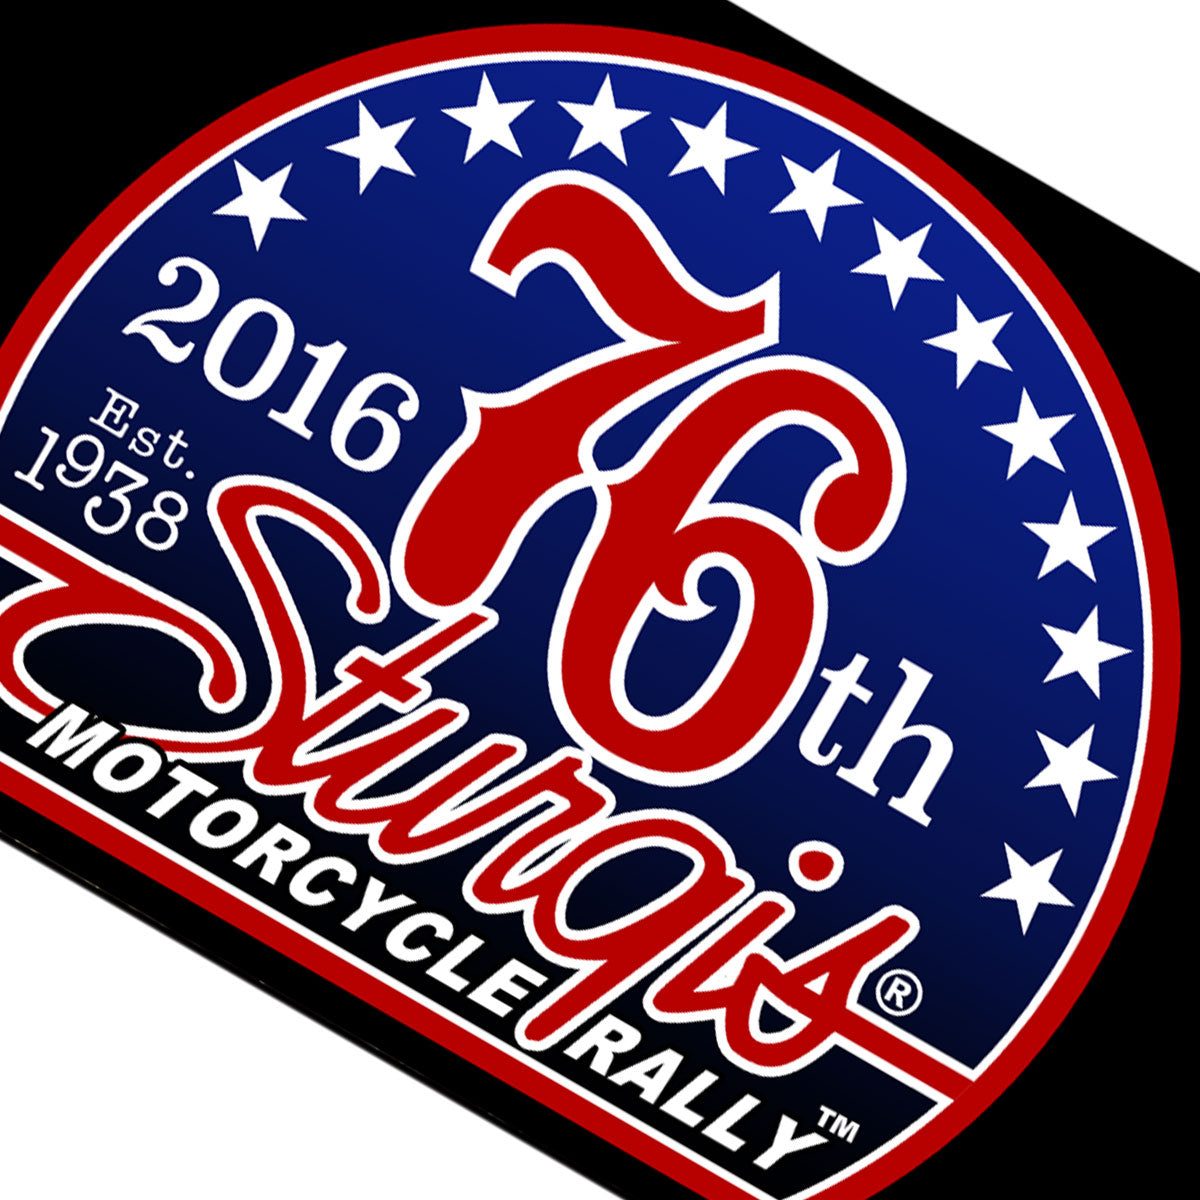 Official 2016 Sturgis Motorcycle Rally 76th Logo Flag